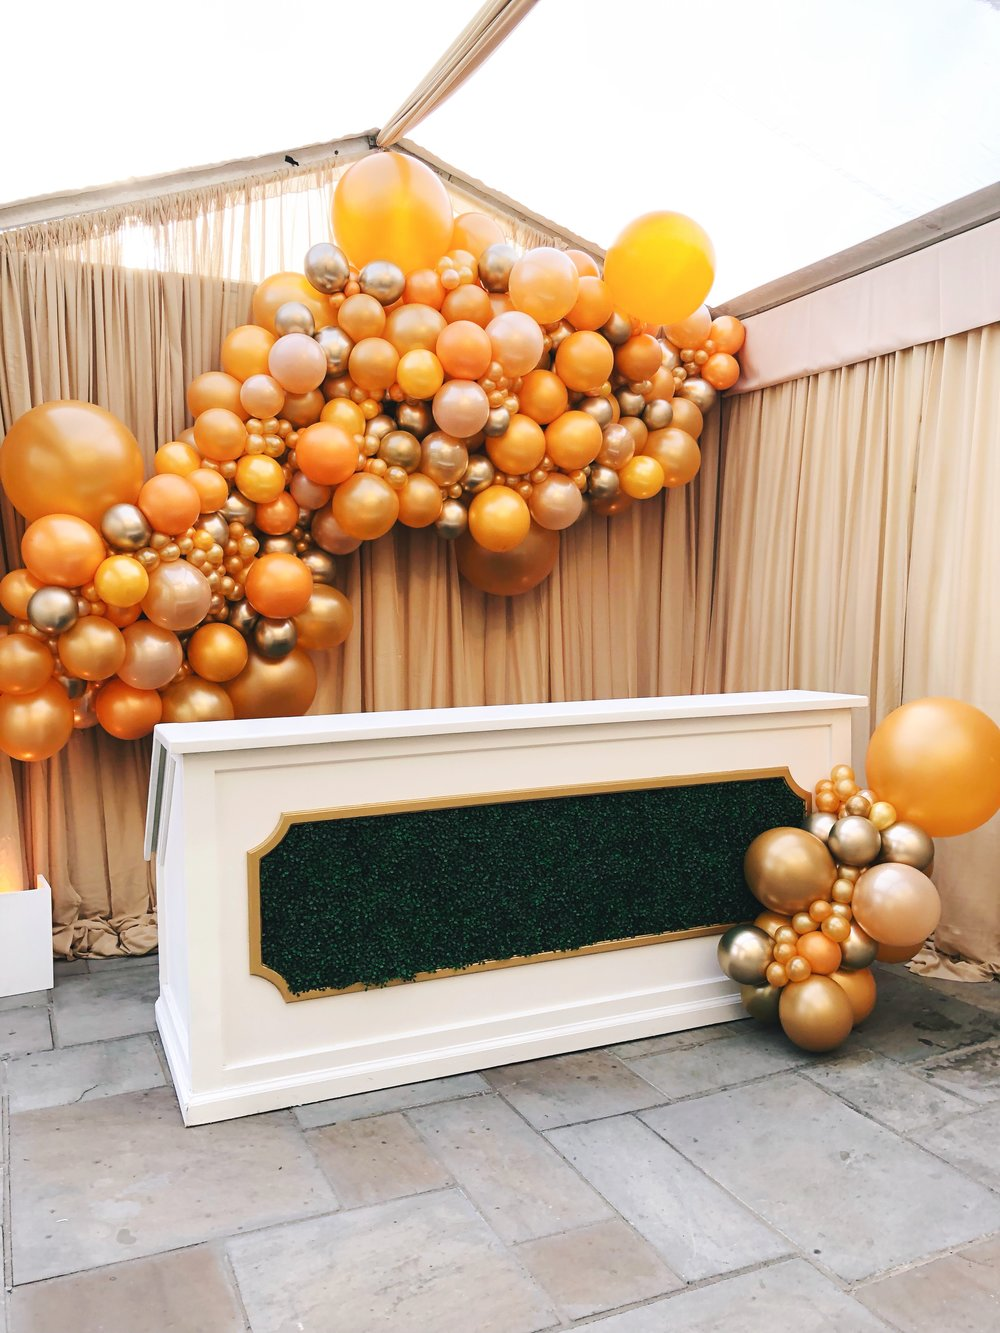 vroom_vroom_balloon_organic_balloon_garlan_installation_nashville_wedding_gold_champagne_bubbly_room.JPG